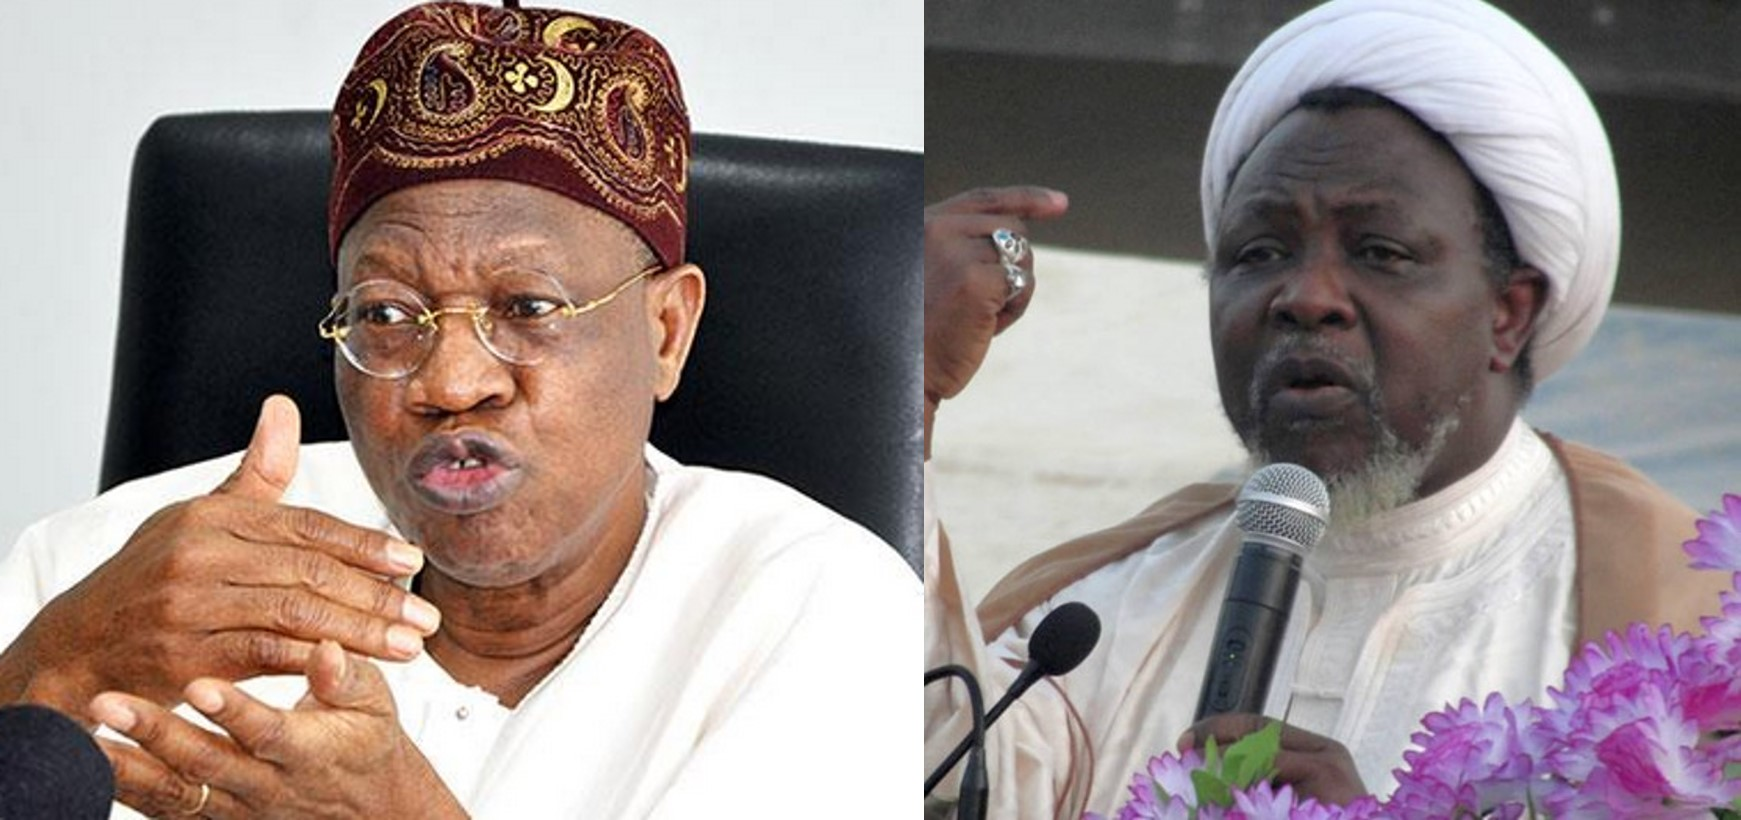 Federal Government spends N3.5m monthly to feed Shi'ites's leader, Ibrahim El-Zakzaky – Lai Mohammed (Video)